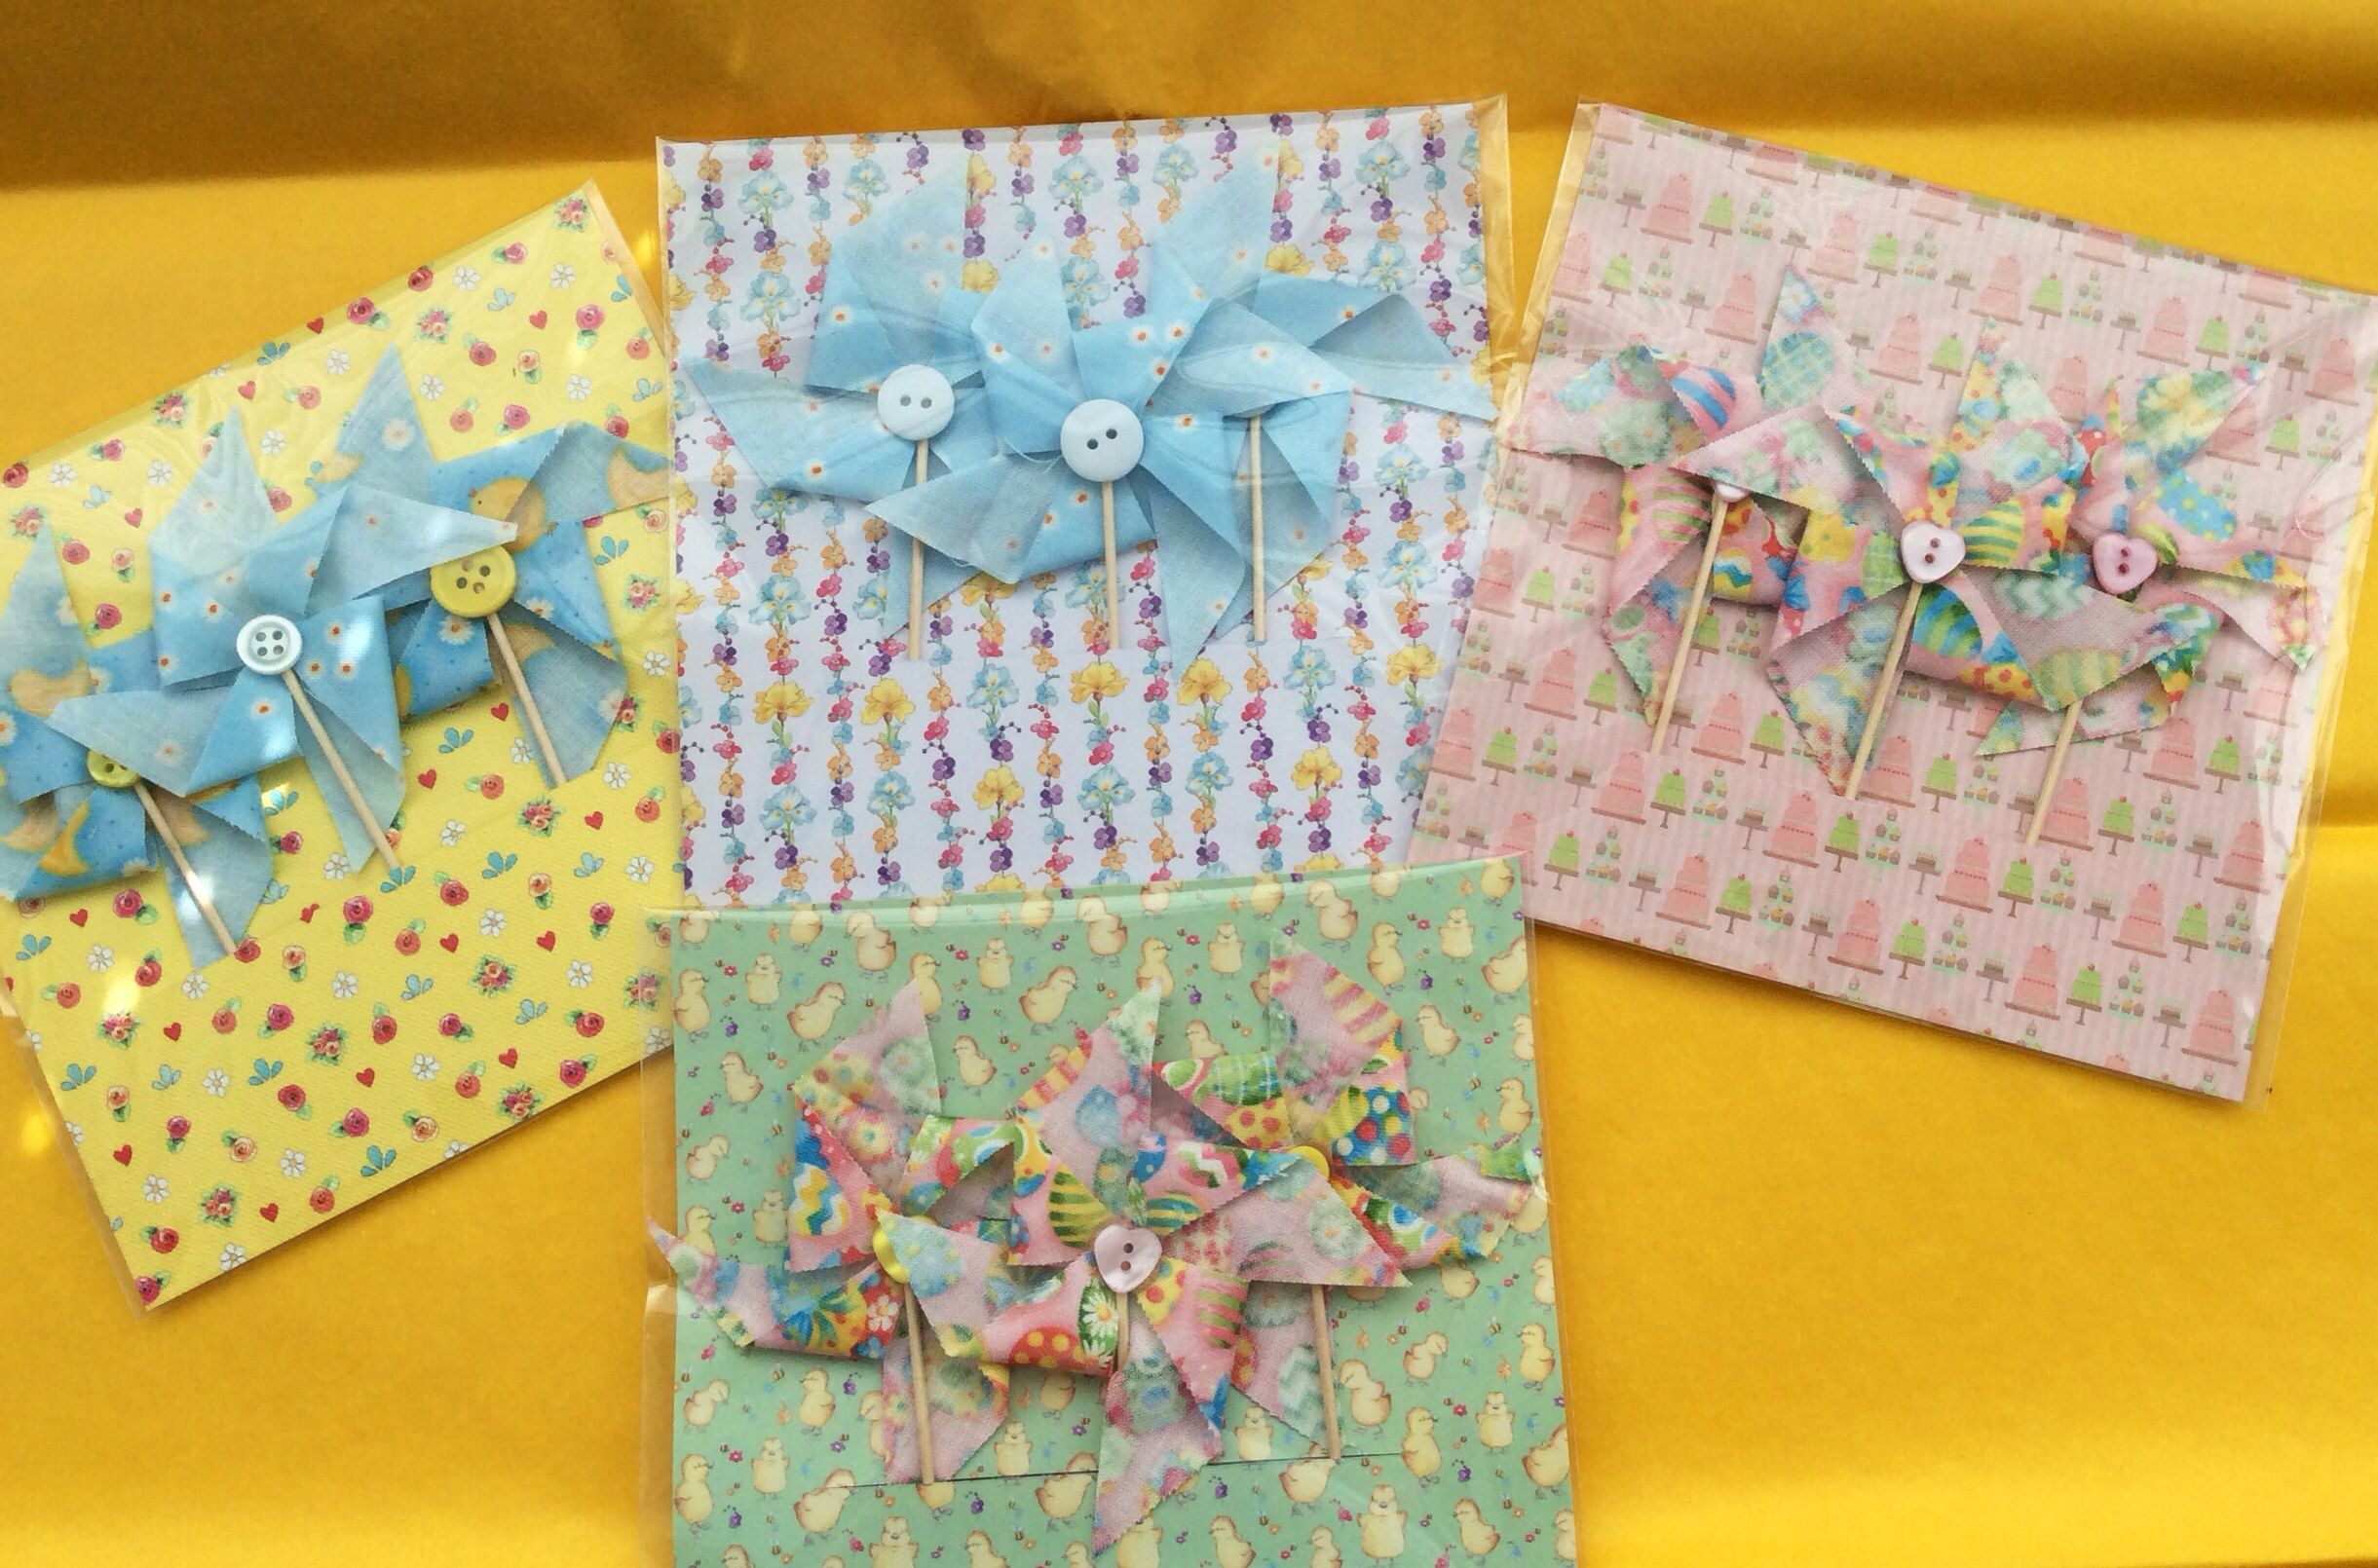 Easter cupcake toppers £1.50 per pack of 3 (plus p&p) from Kitty's Bunting